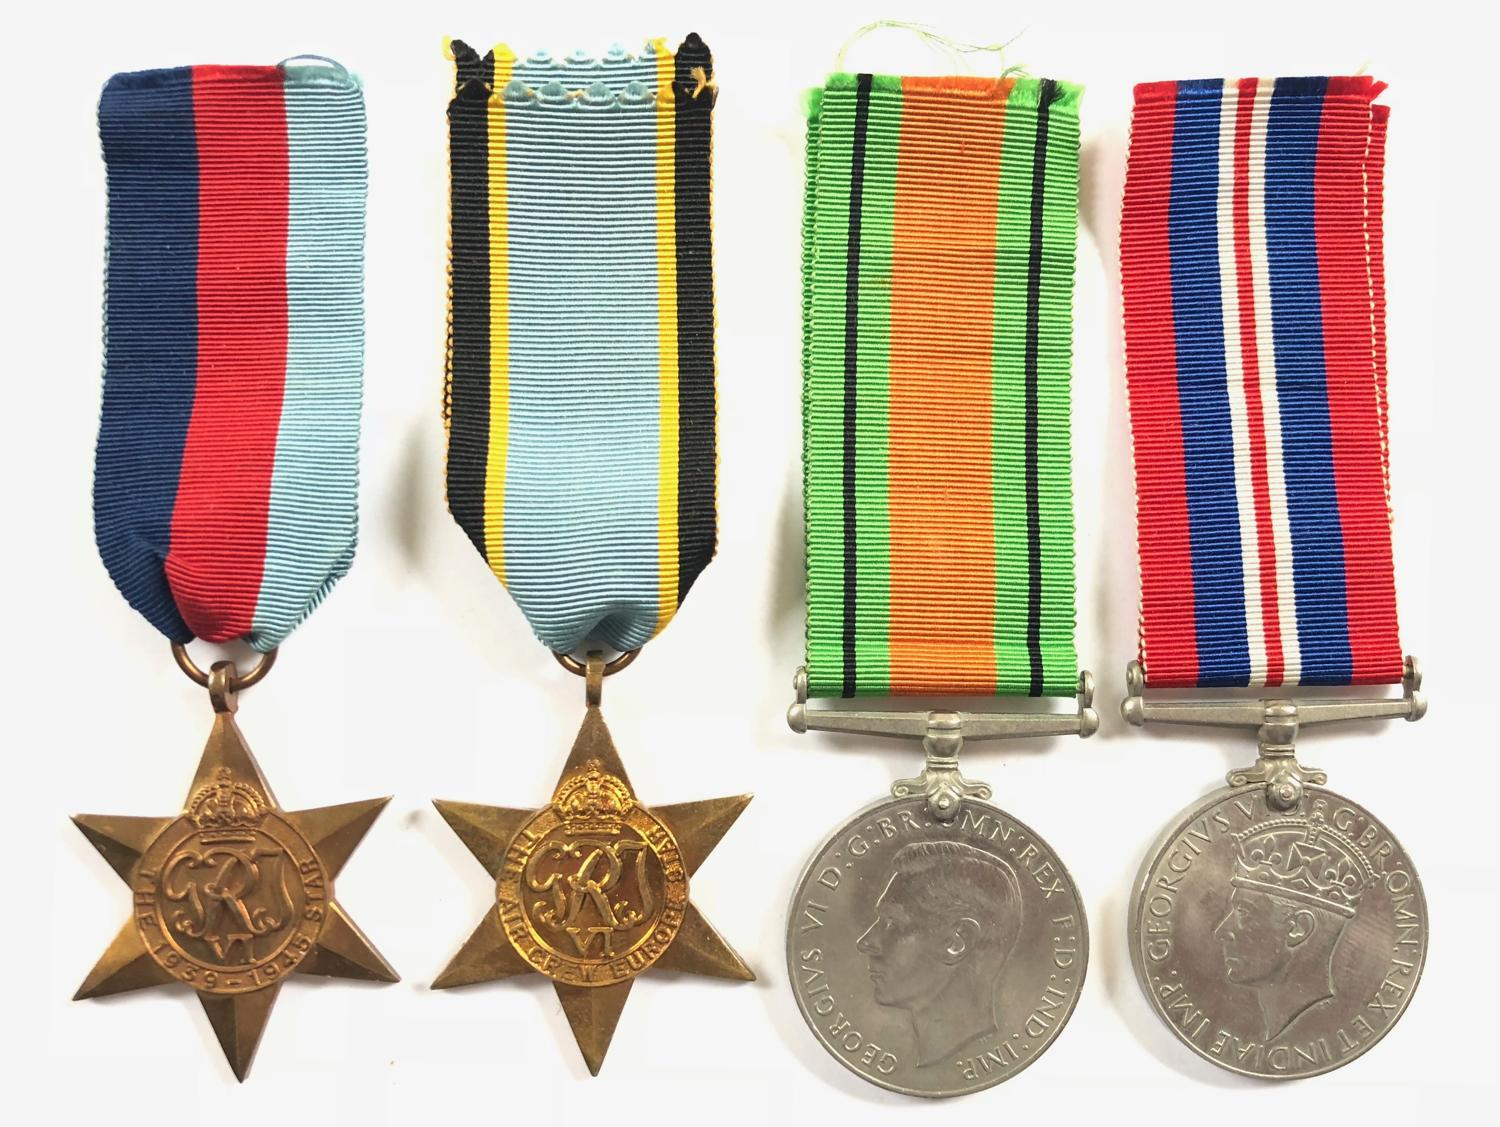 WW2 Aircrew Europe Star Group of Four Medals.